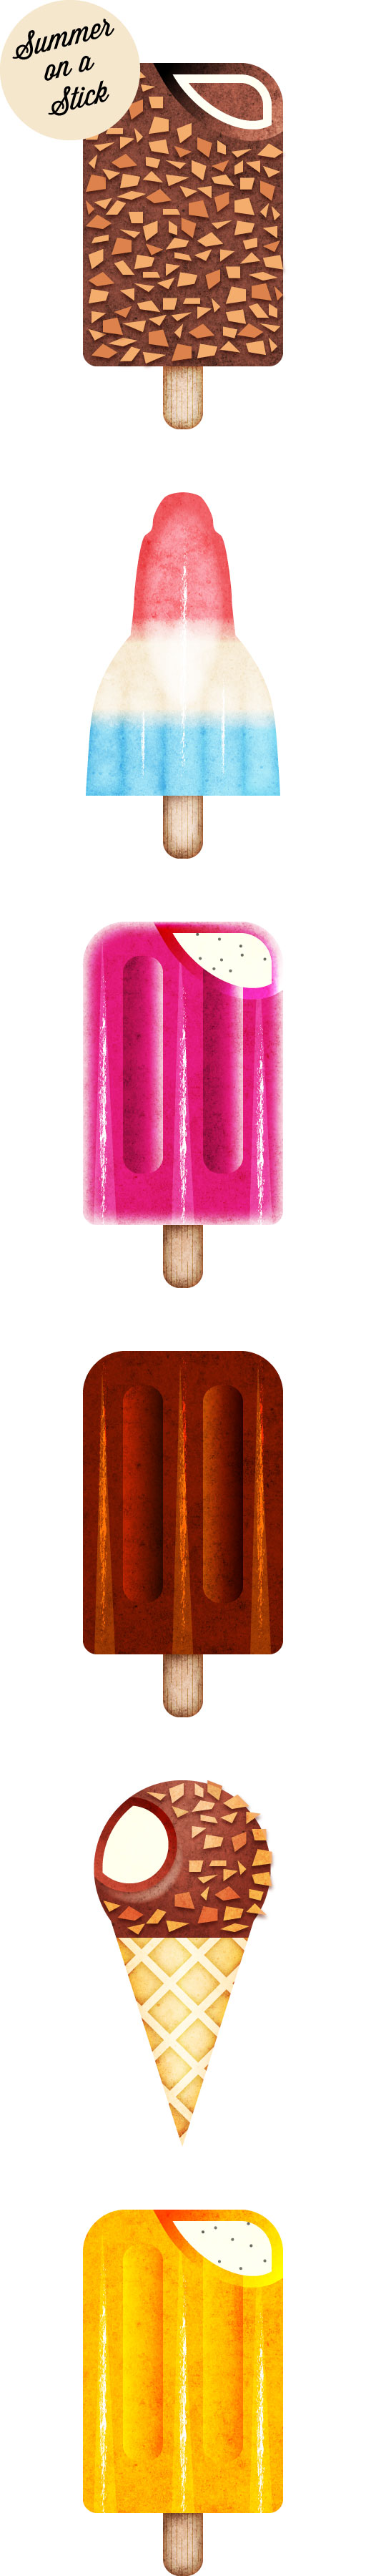 Summer on a Stick. Design inspired by Art Deco